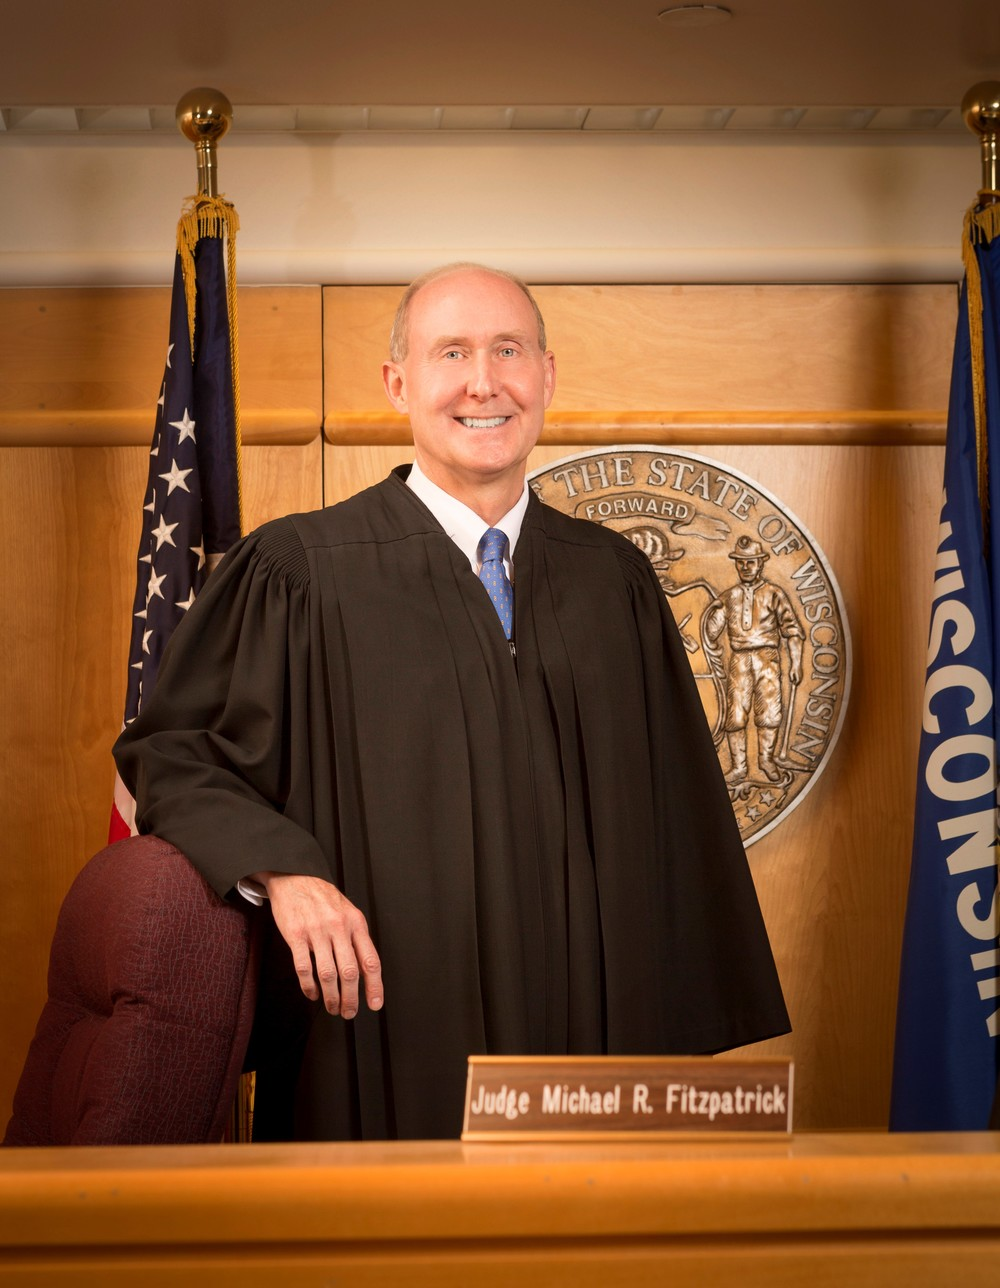 Contact Judge Michael Fitzpatrick for Court of Appeals